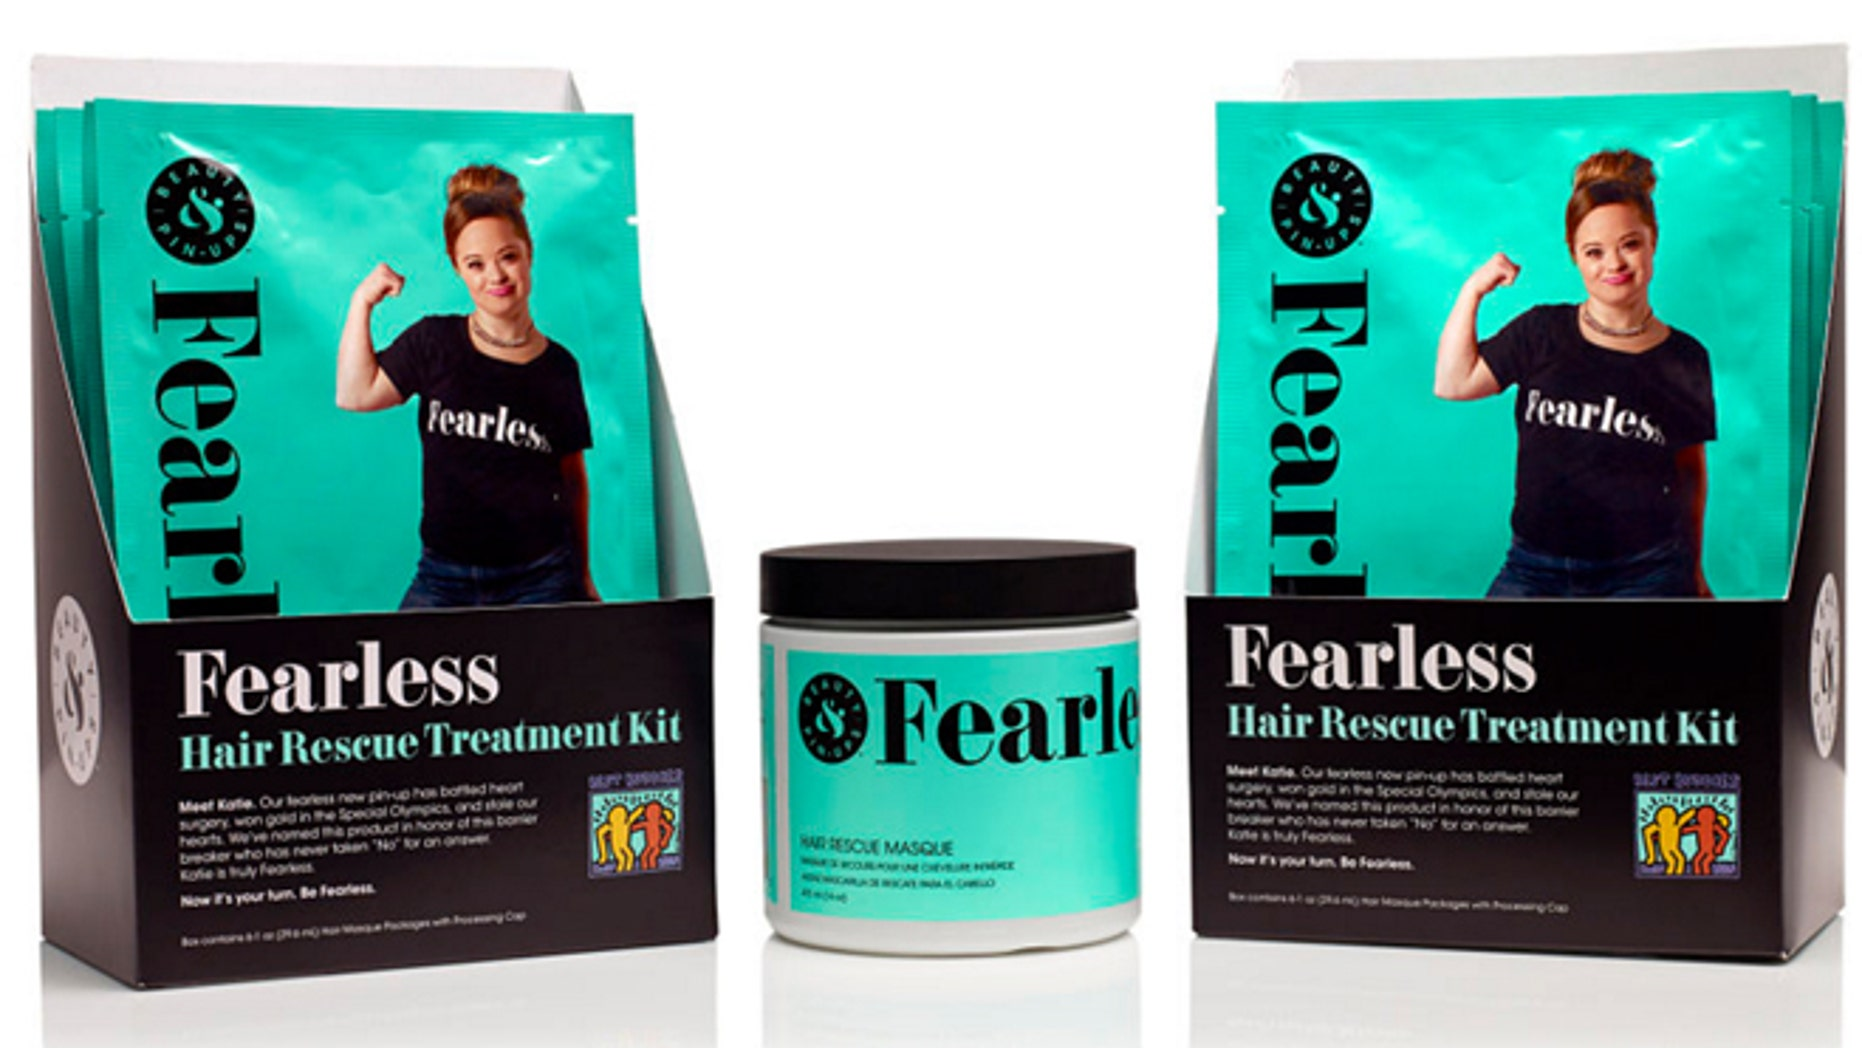 Katie Meade was chosen as the spokesmodel for Beauty & Pin-Ups Fearless line.